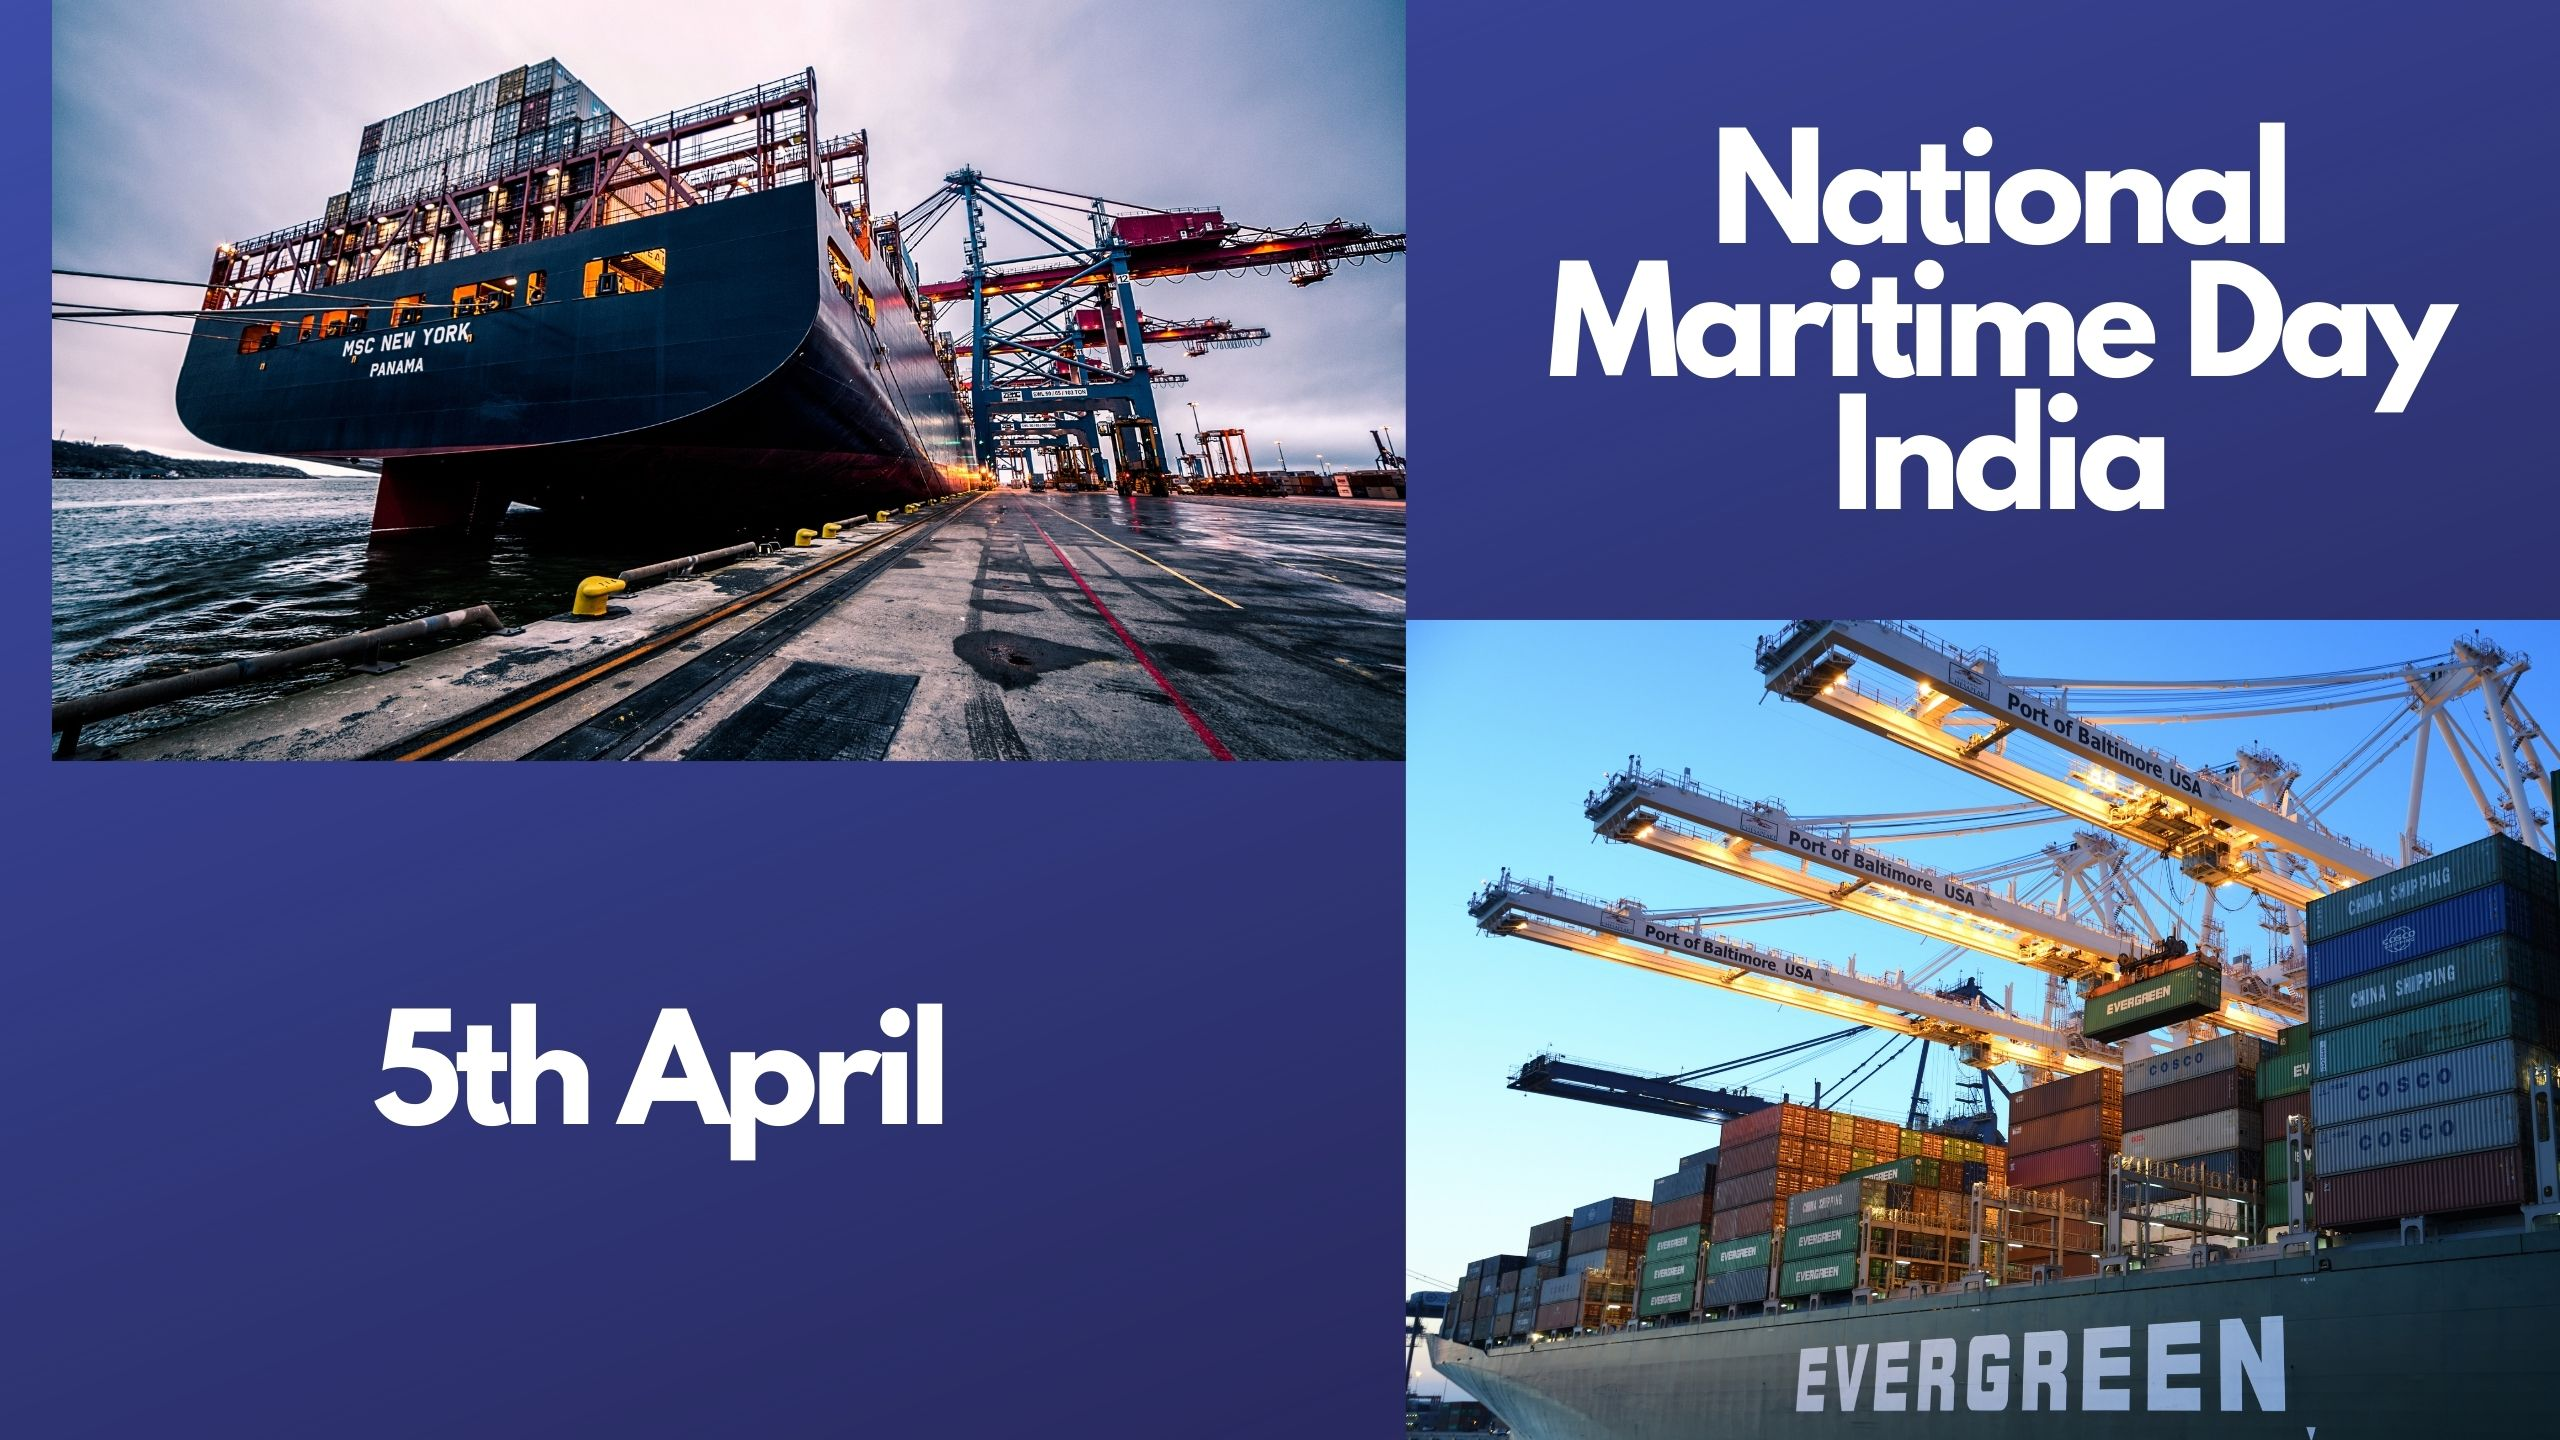 National Maritime Day India